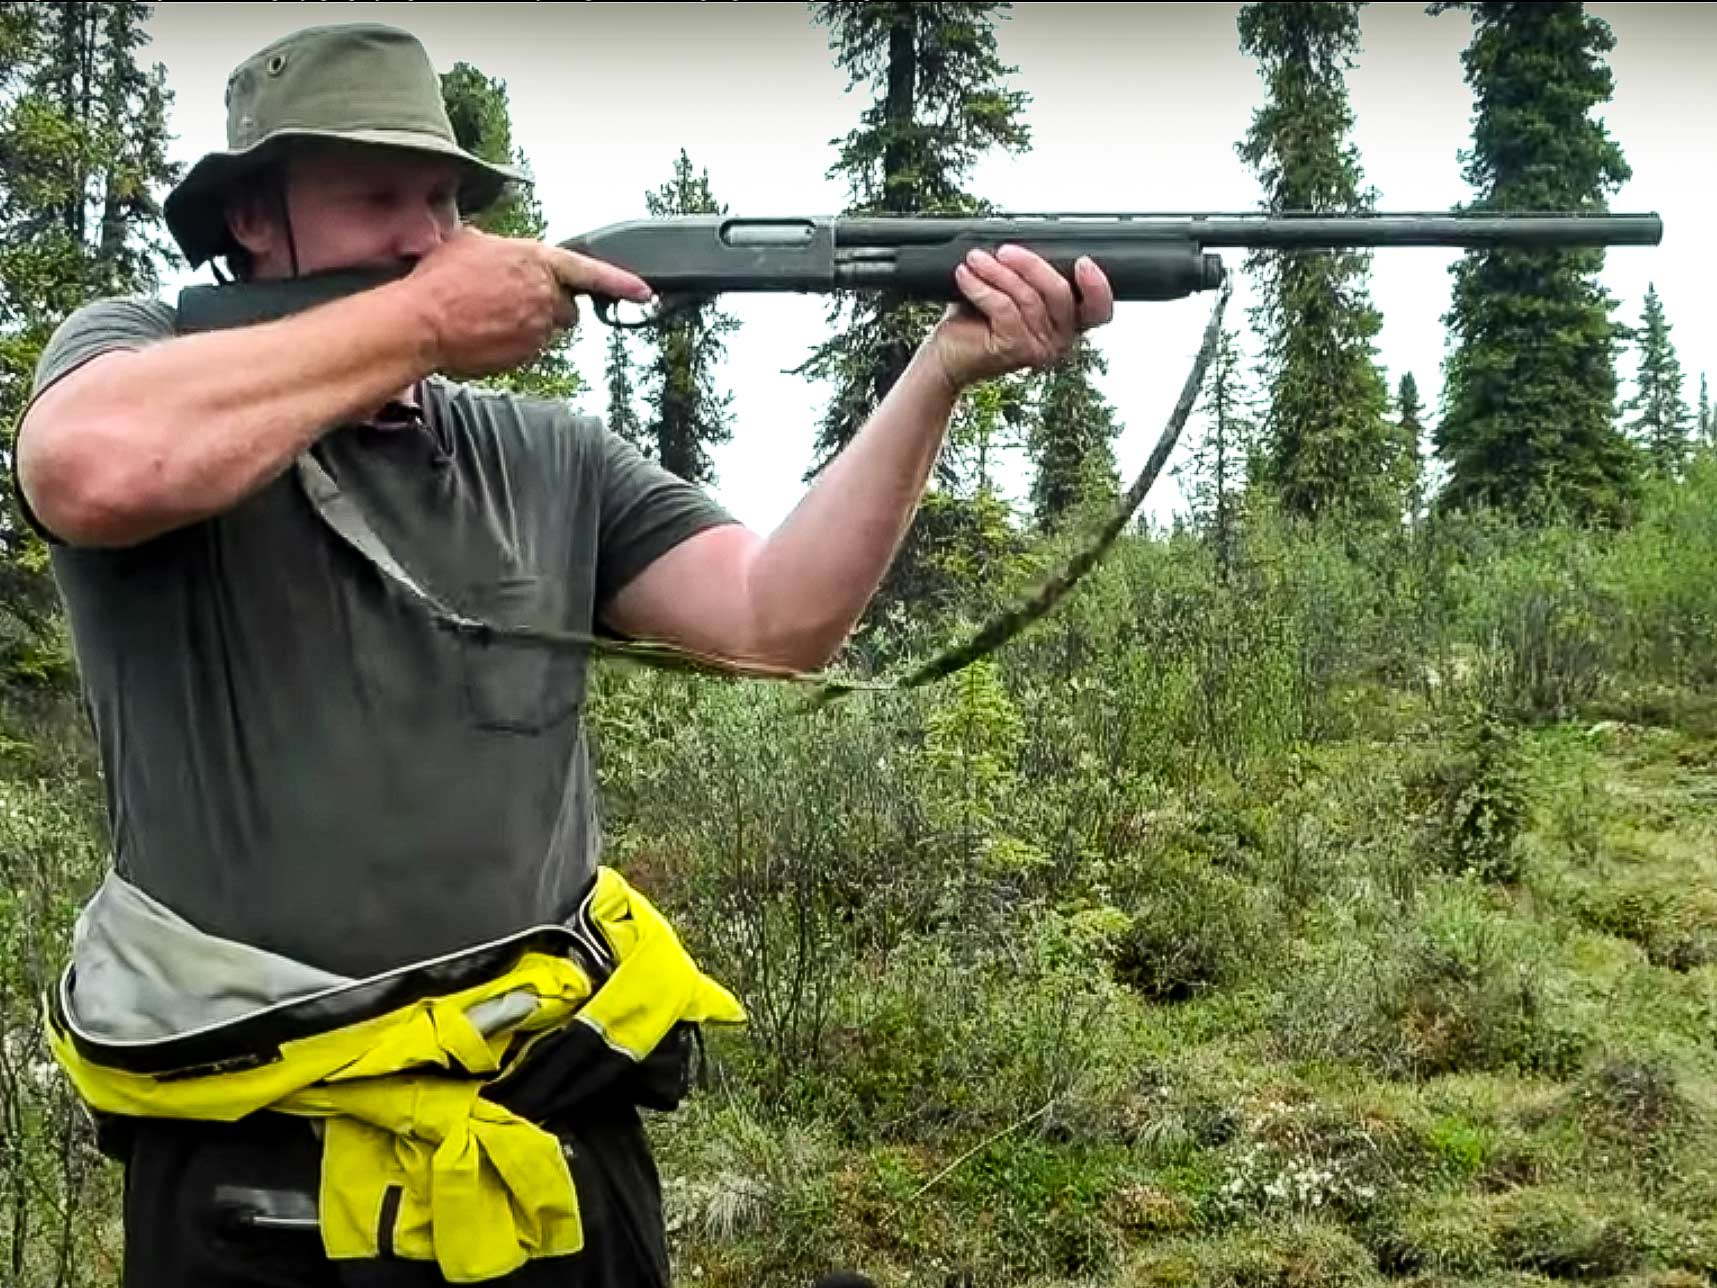 A man holds a shotgun to his shoulder in a lush green forest clearing.